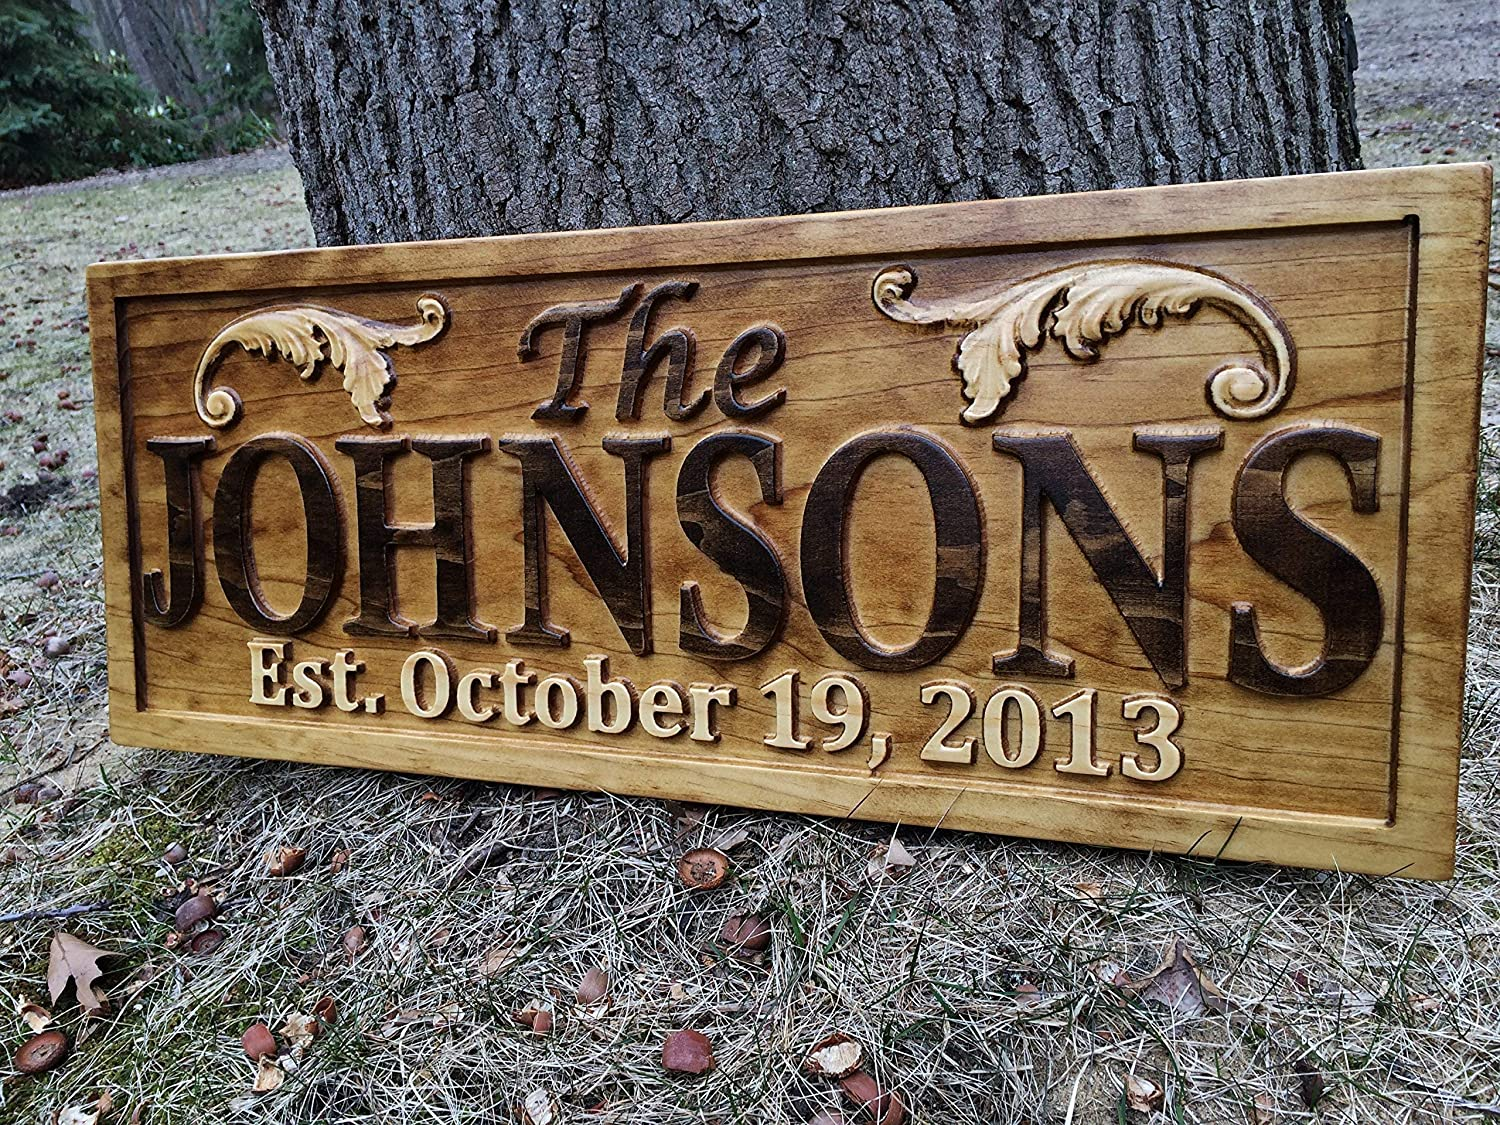 Personalized lake house sign custom wood sign carved last name wooden signs home décor 3d cabin rustic lakehouse personalized wedding gift established sign